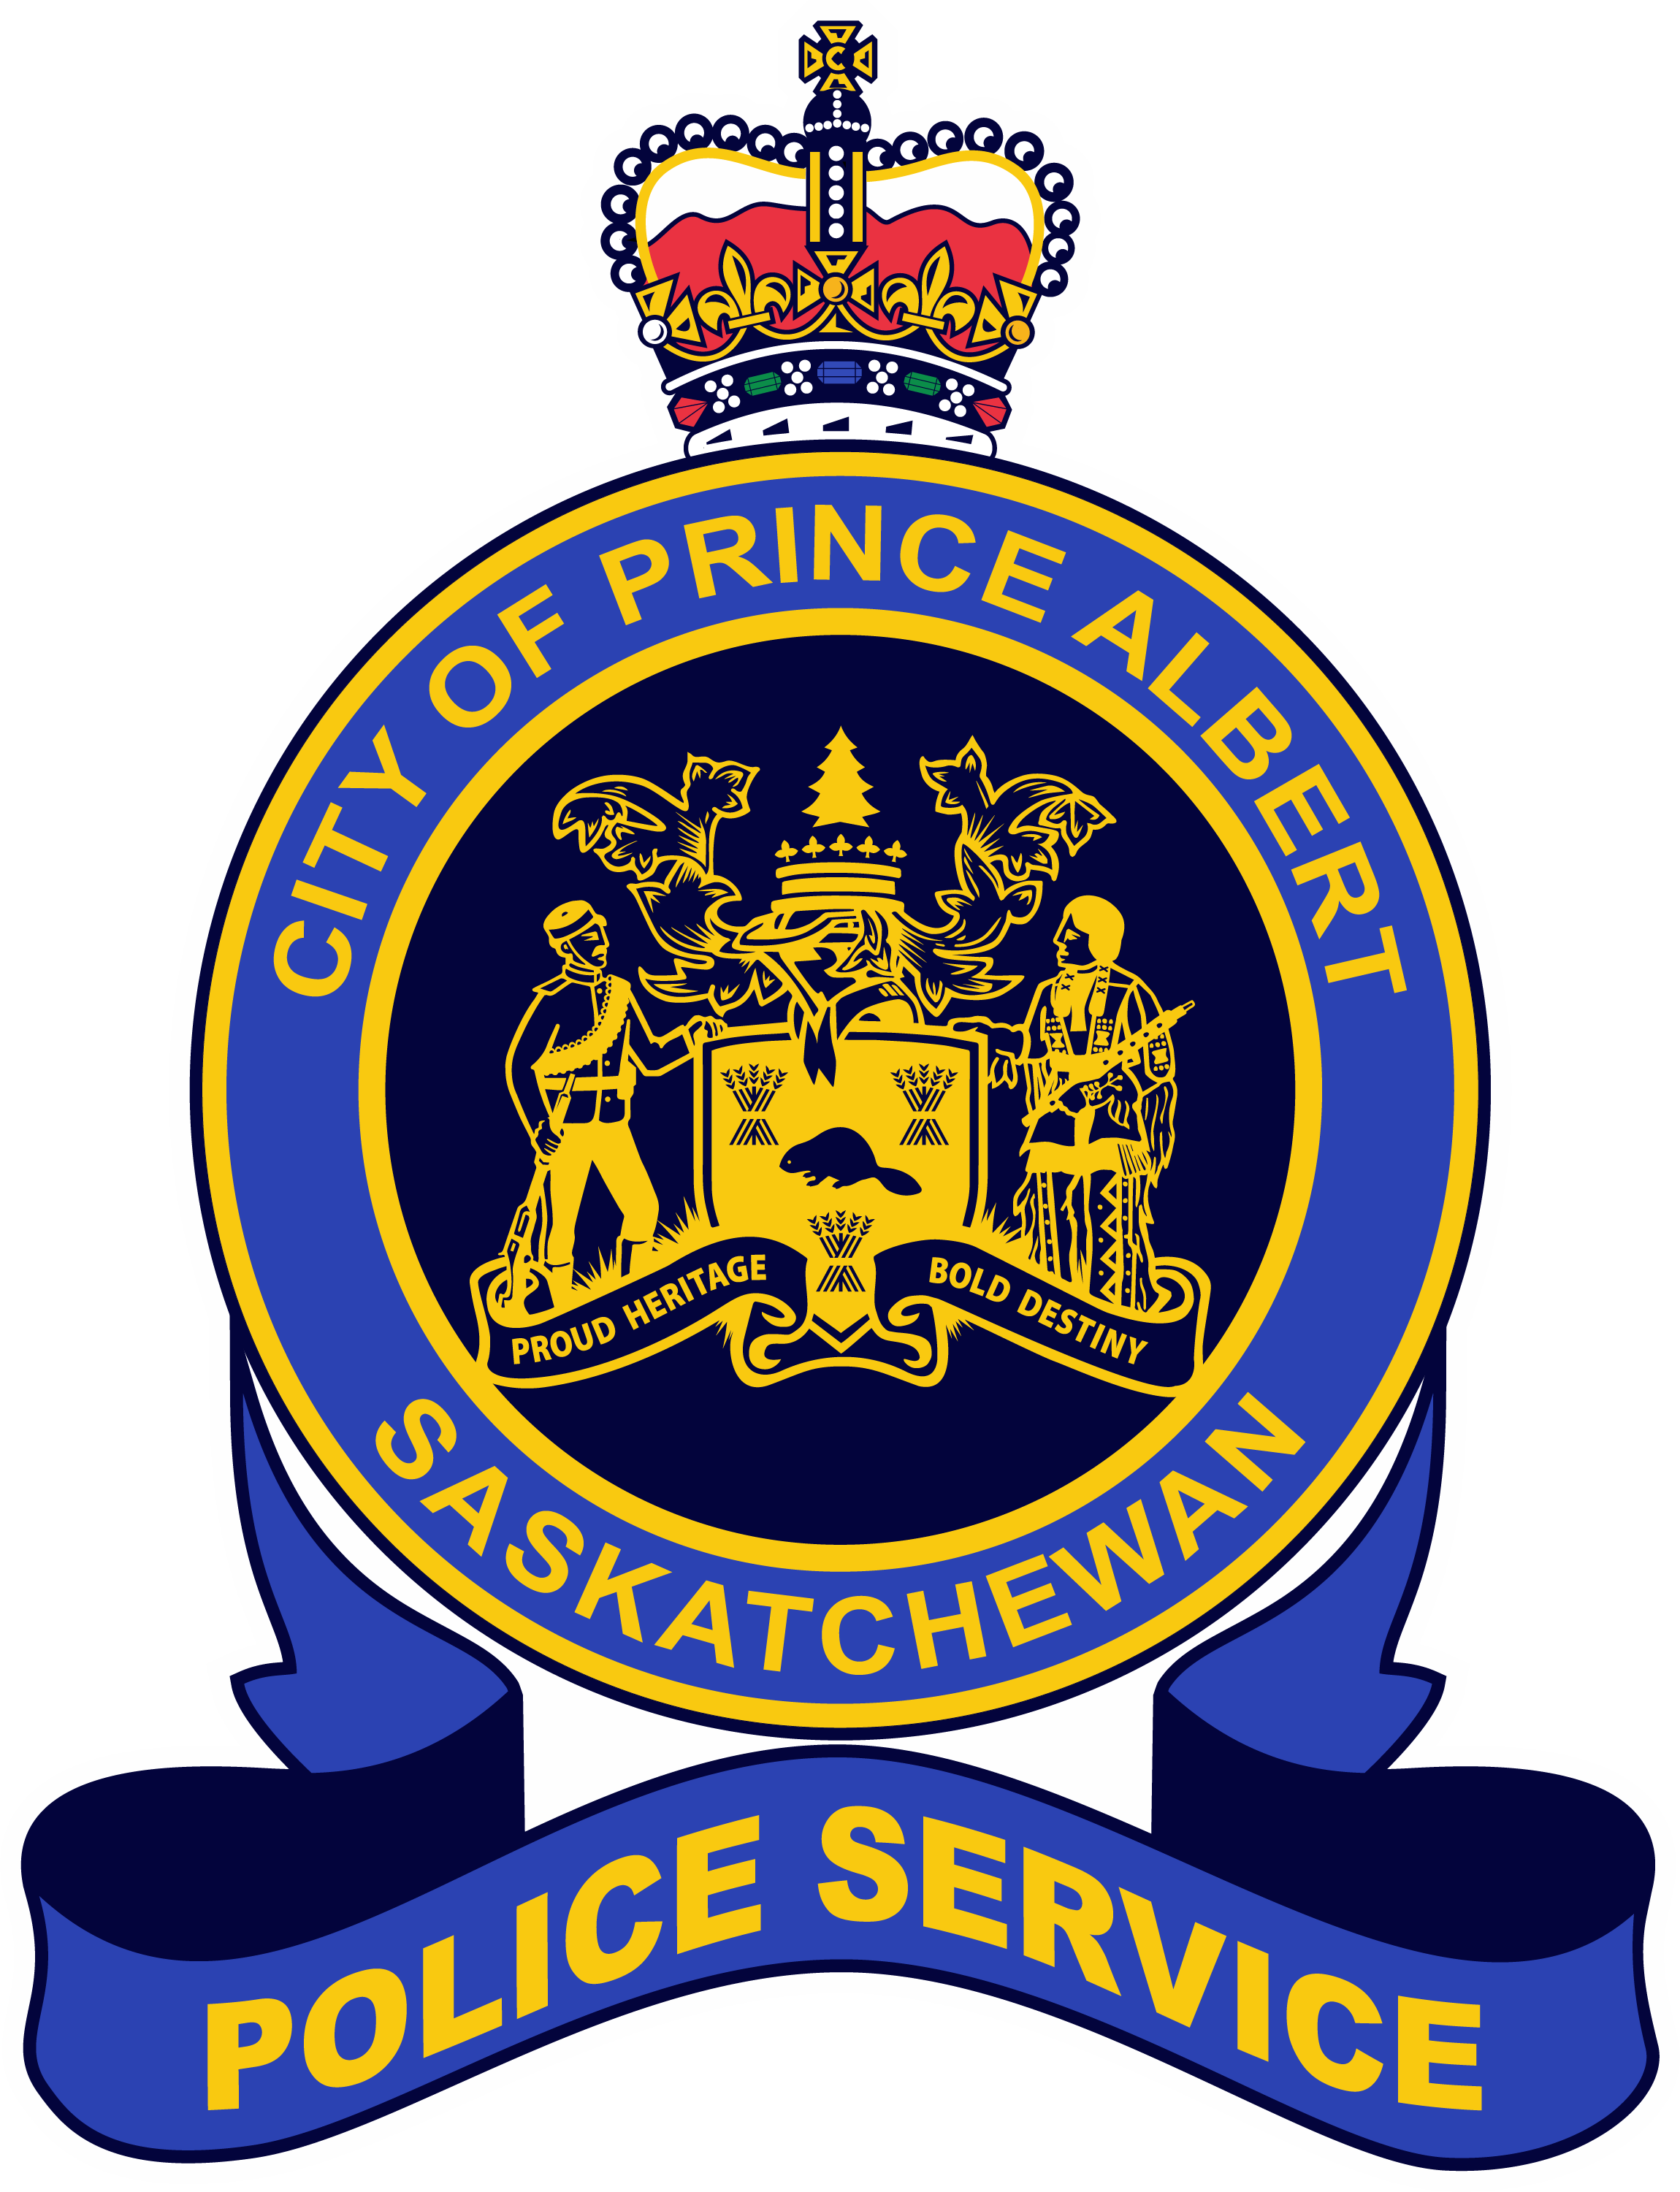 Media Release - New Provincial ICE Unit Coordinator Based in Prince Albert